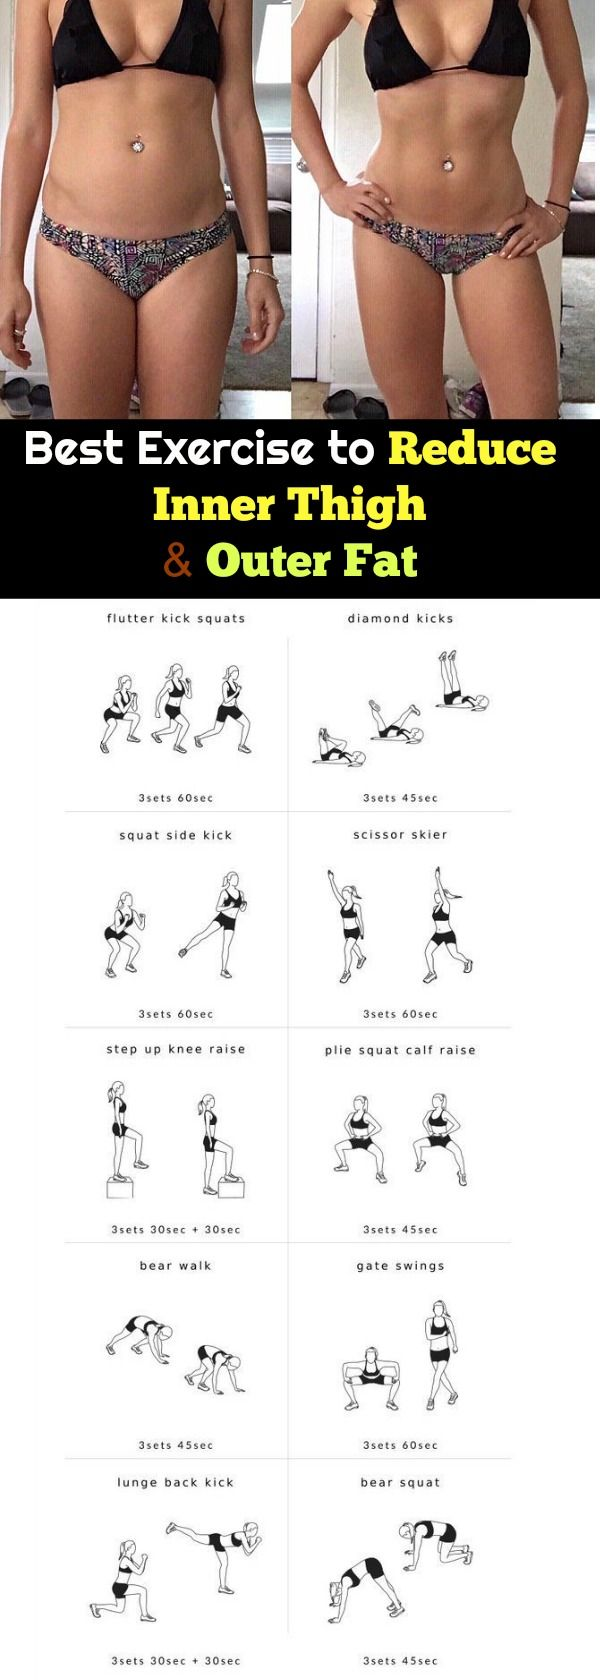 Best Exercise to Reduce Inner Thigh and Outer Fat Fast in a Week: In the exercise you will learn how to get rid of that suborn thigh fat and hips fat at home